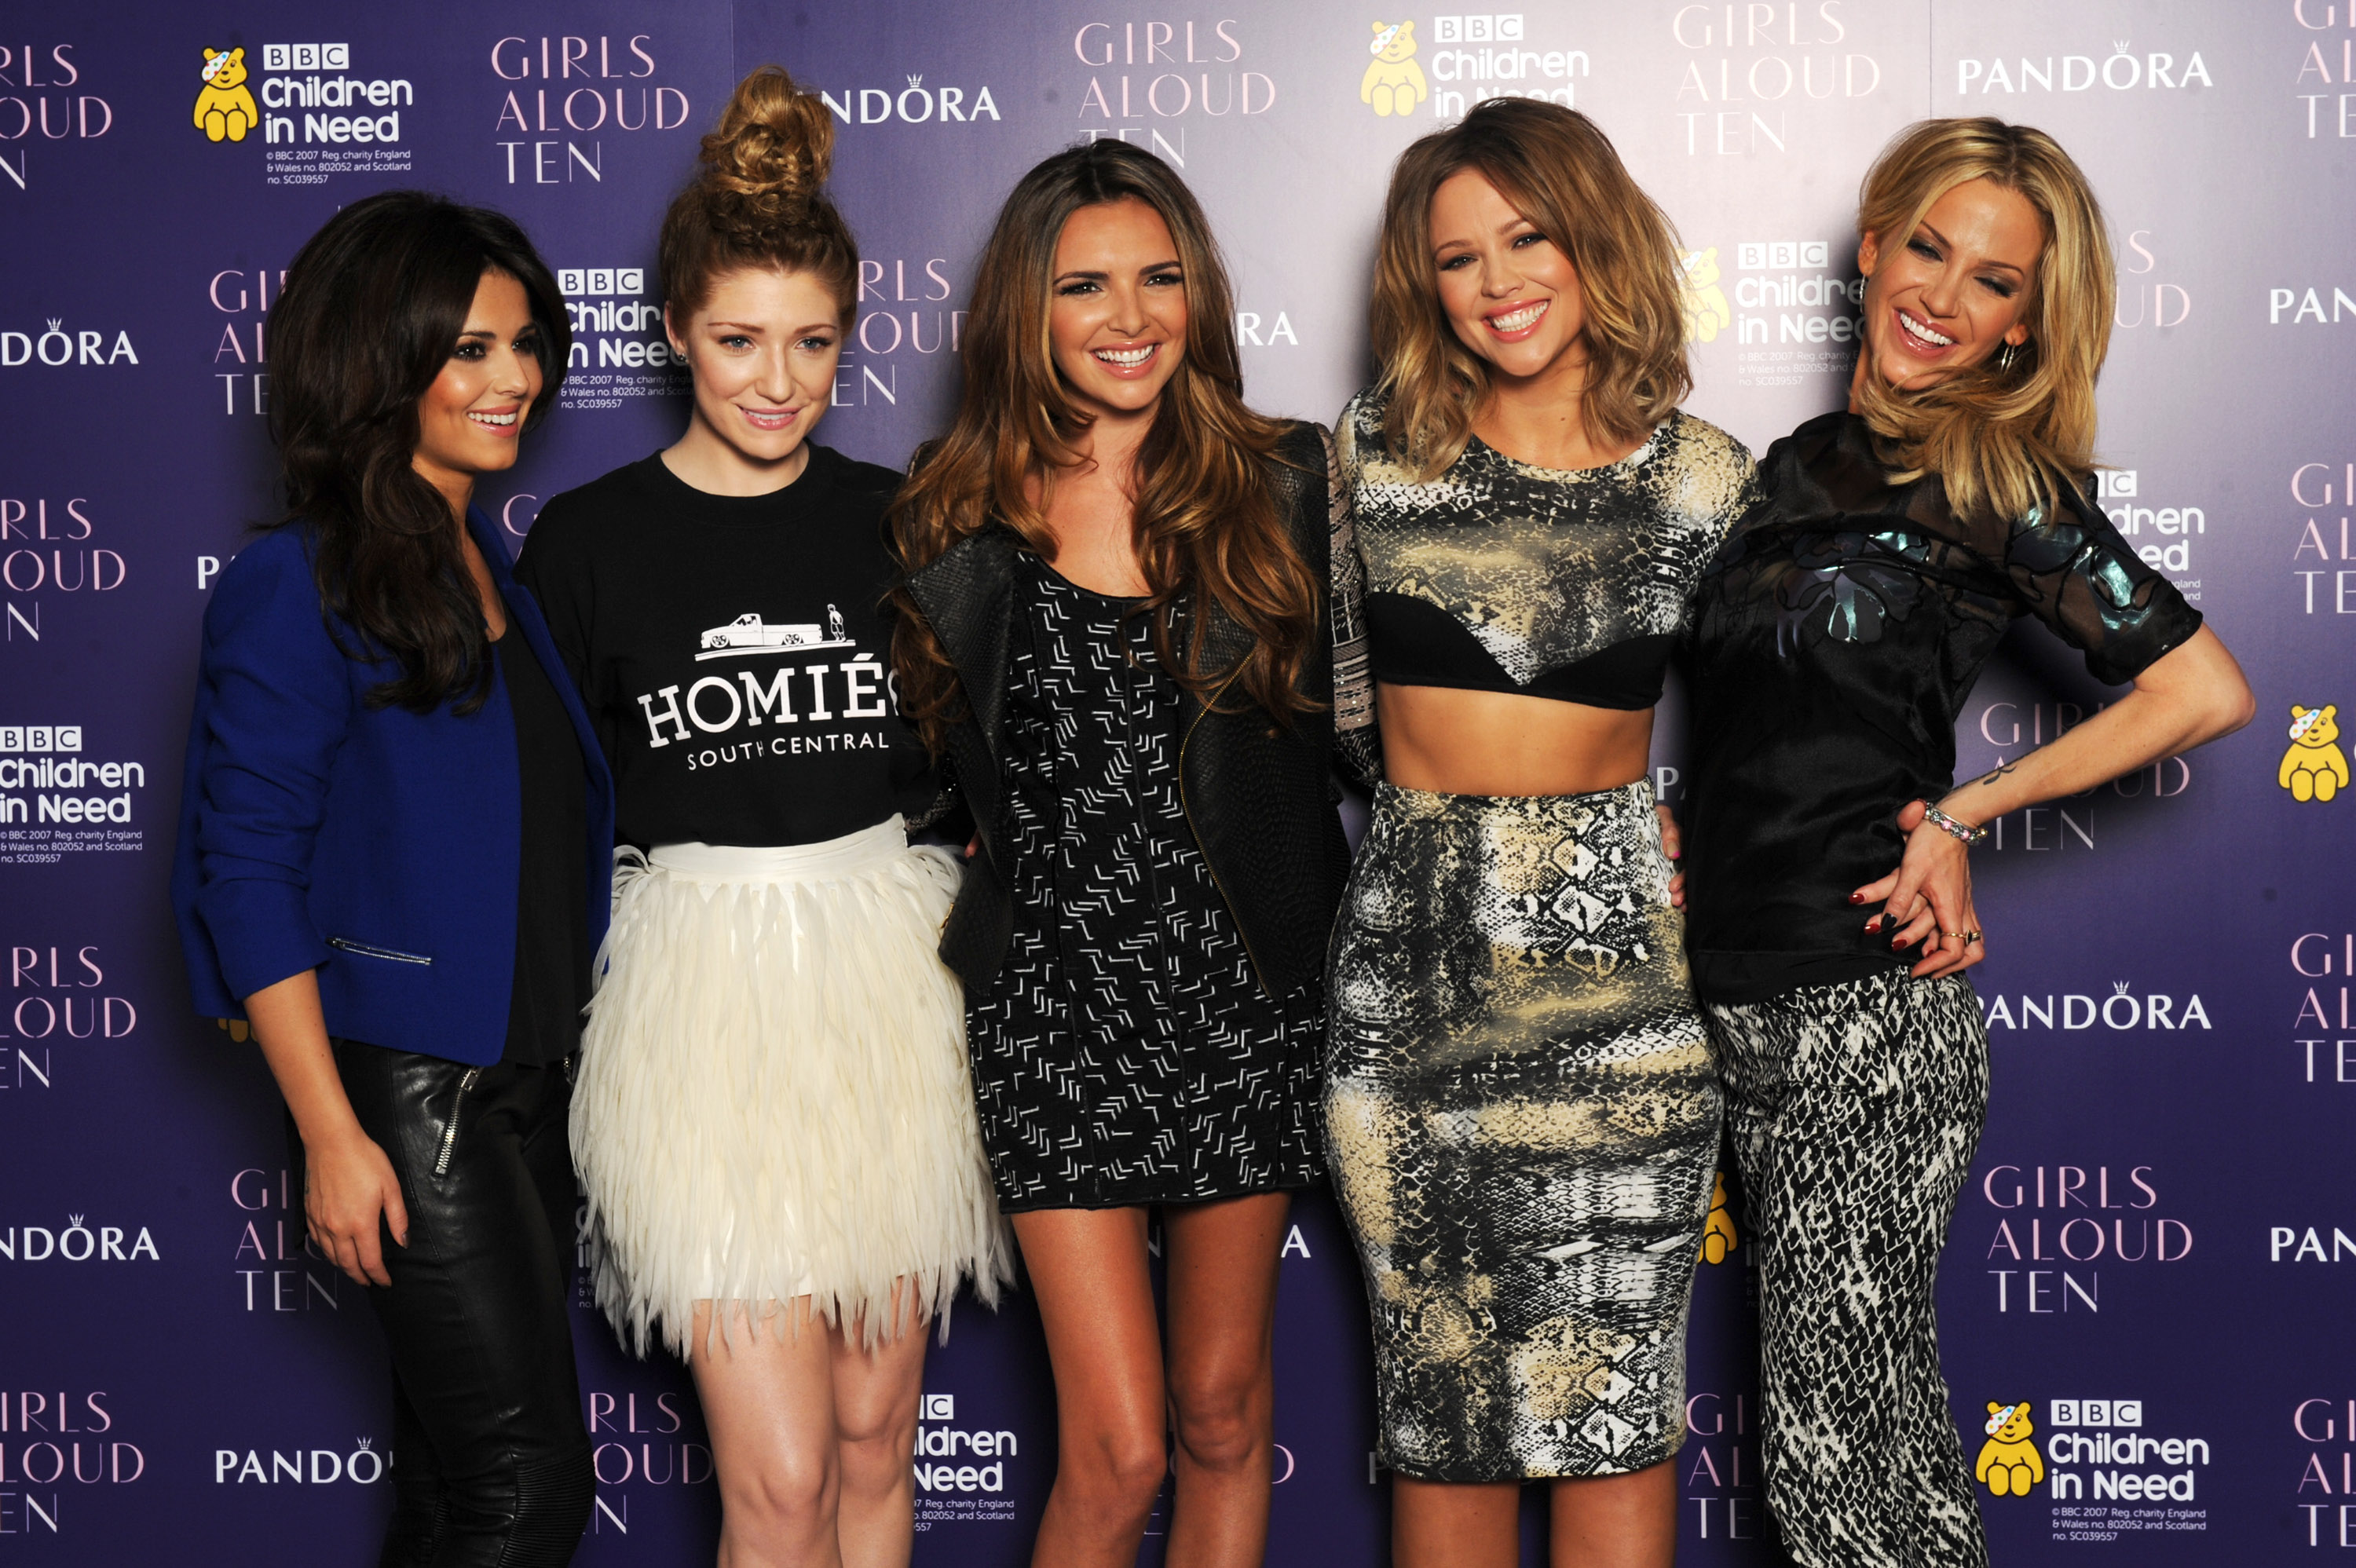 LONDON, ENGLAND - OCTOBER 19: (L-R) Cheryl Cole, Nicola Roberts, Nadine Coyle, Kimberley Walsh and Sarah Harding of Girls Aloud pose at a press conference to announce 'Girls Aloud Ten, The Hits Tour 2013' at The Corinthia Hotel on October 19, 2012 in London, England. (Photo by Dave J Hogan/Getty Images)